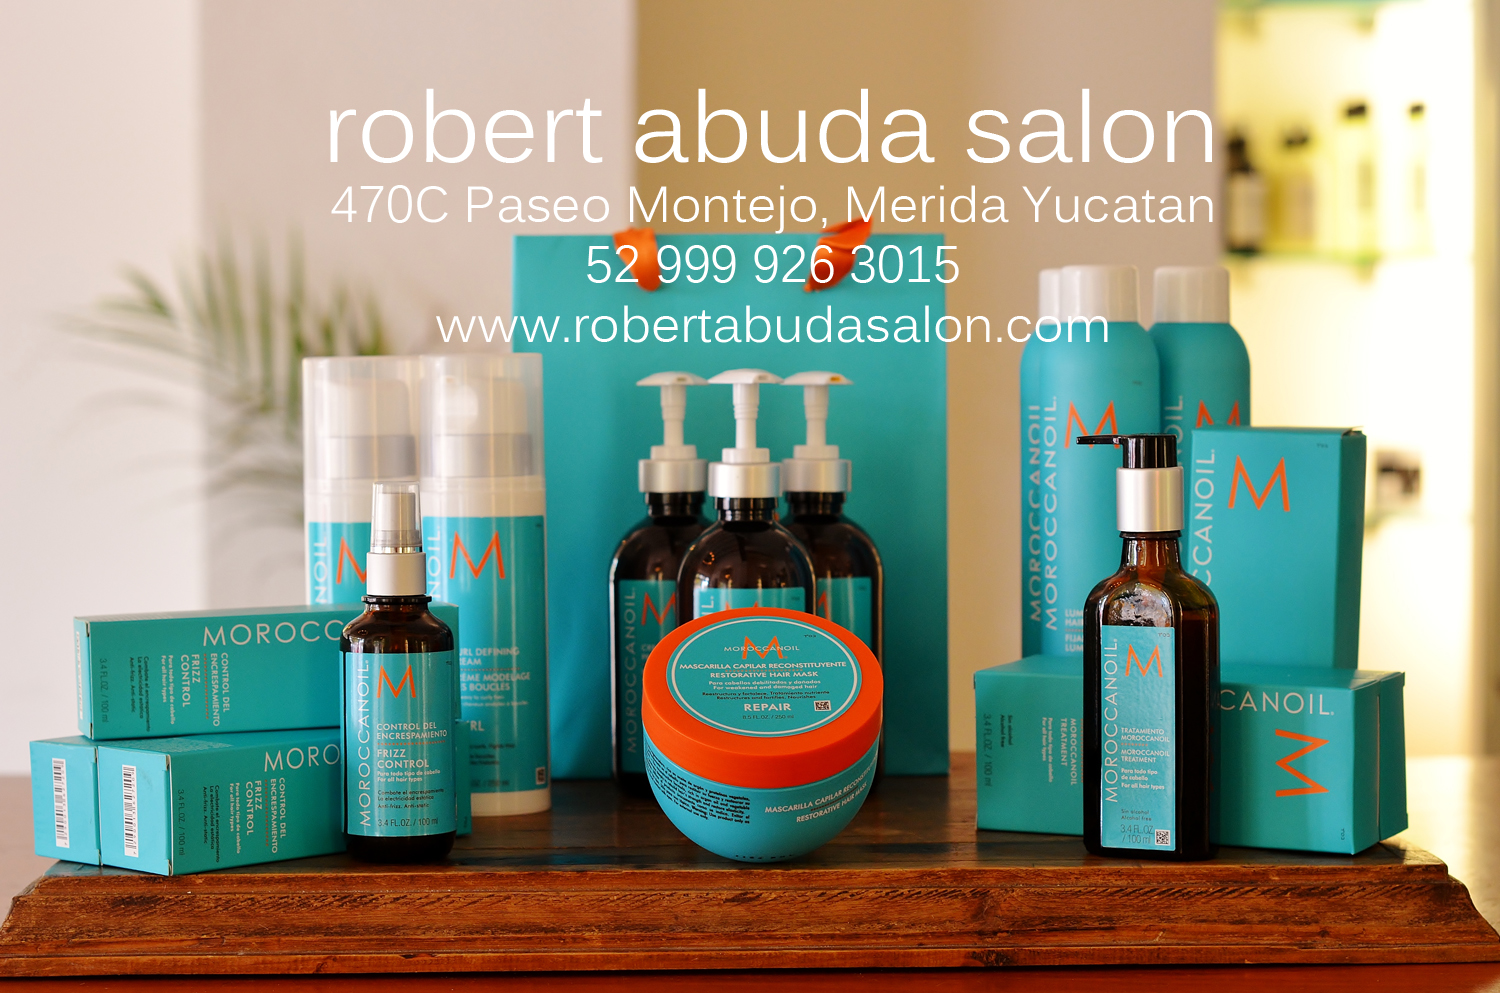 moroccan oil salon de belleza merida 11